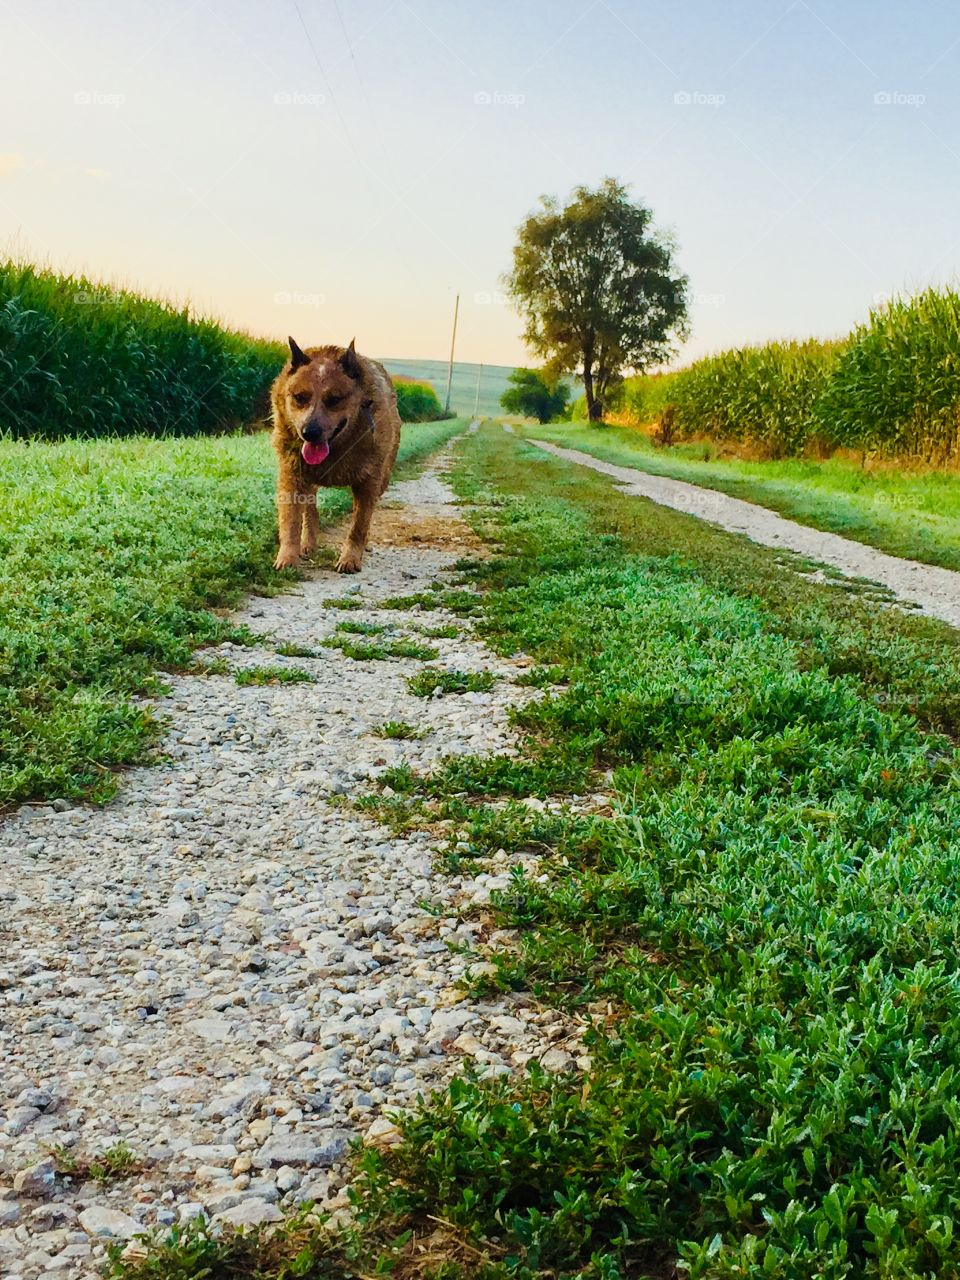 Low-level view of an Australian Cattle Dog / Red Heeler walking down a country lane with lush grass and cornfields on either side